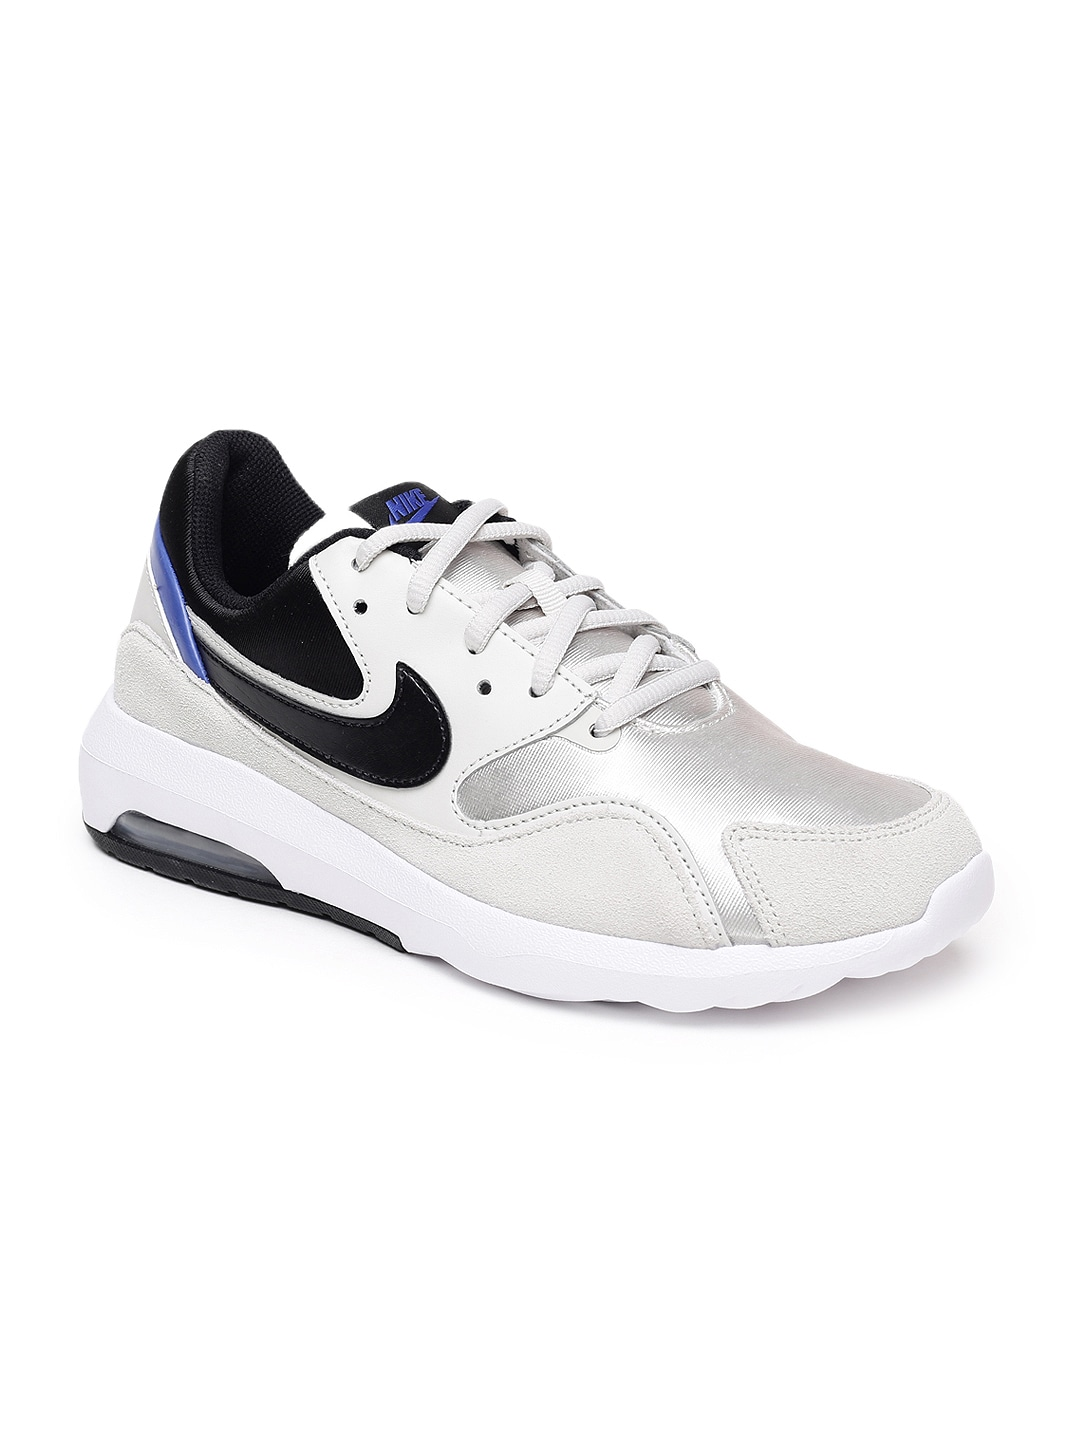 Nike Air Shoe - Buy Nike Air Shoe online in India 46b868f50